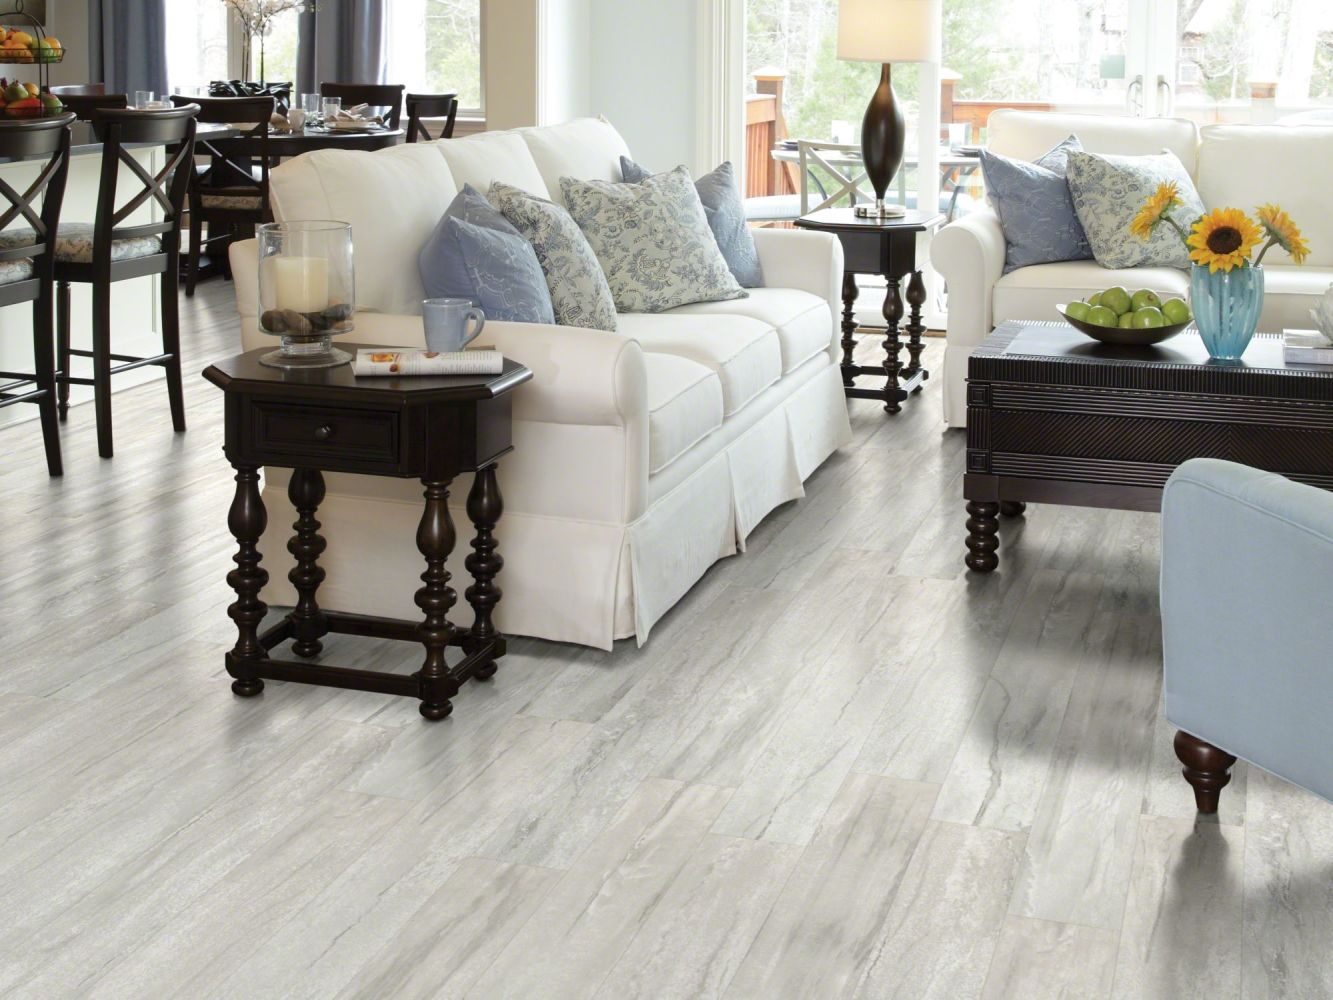 Shaw Floors Resilient Residential Classico Plus Plank Bianco 00107_2426V